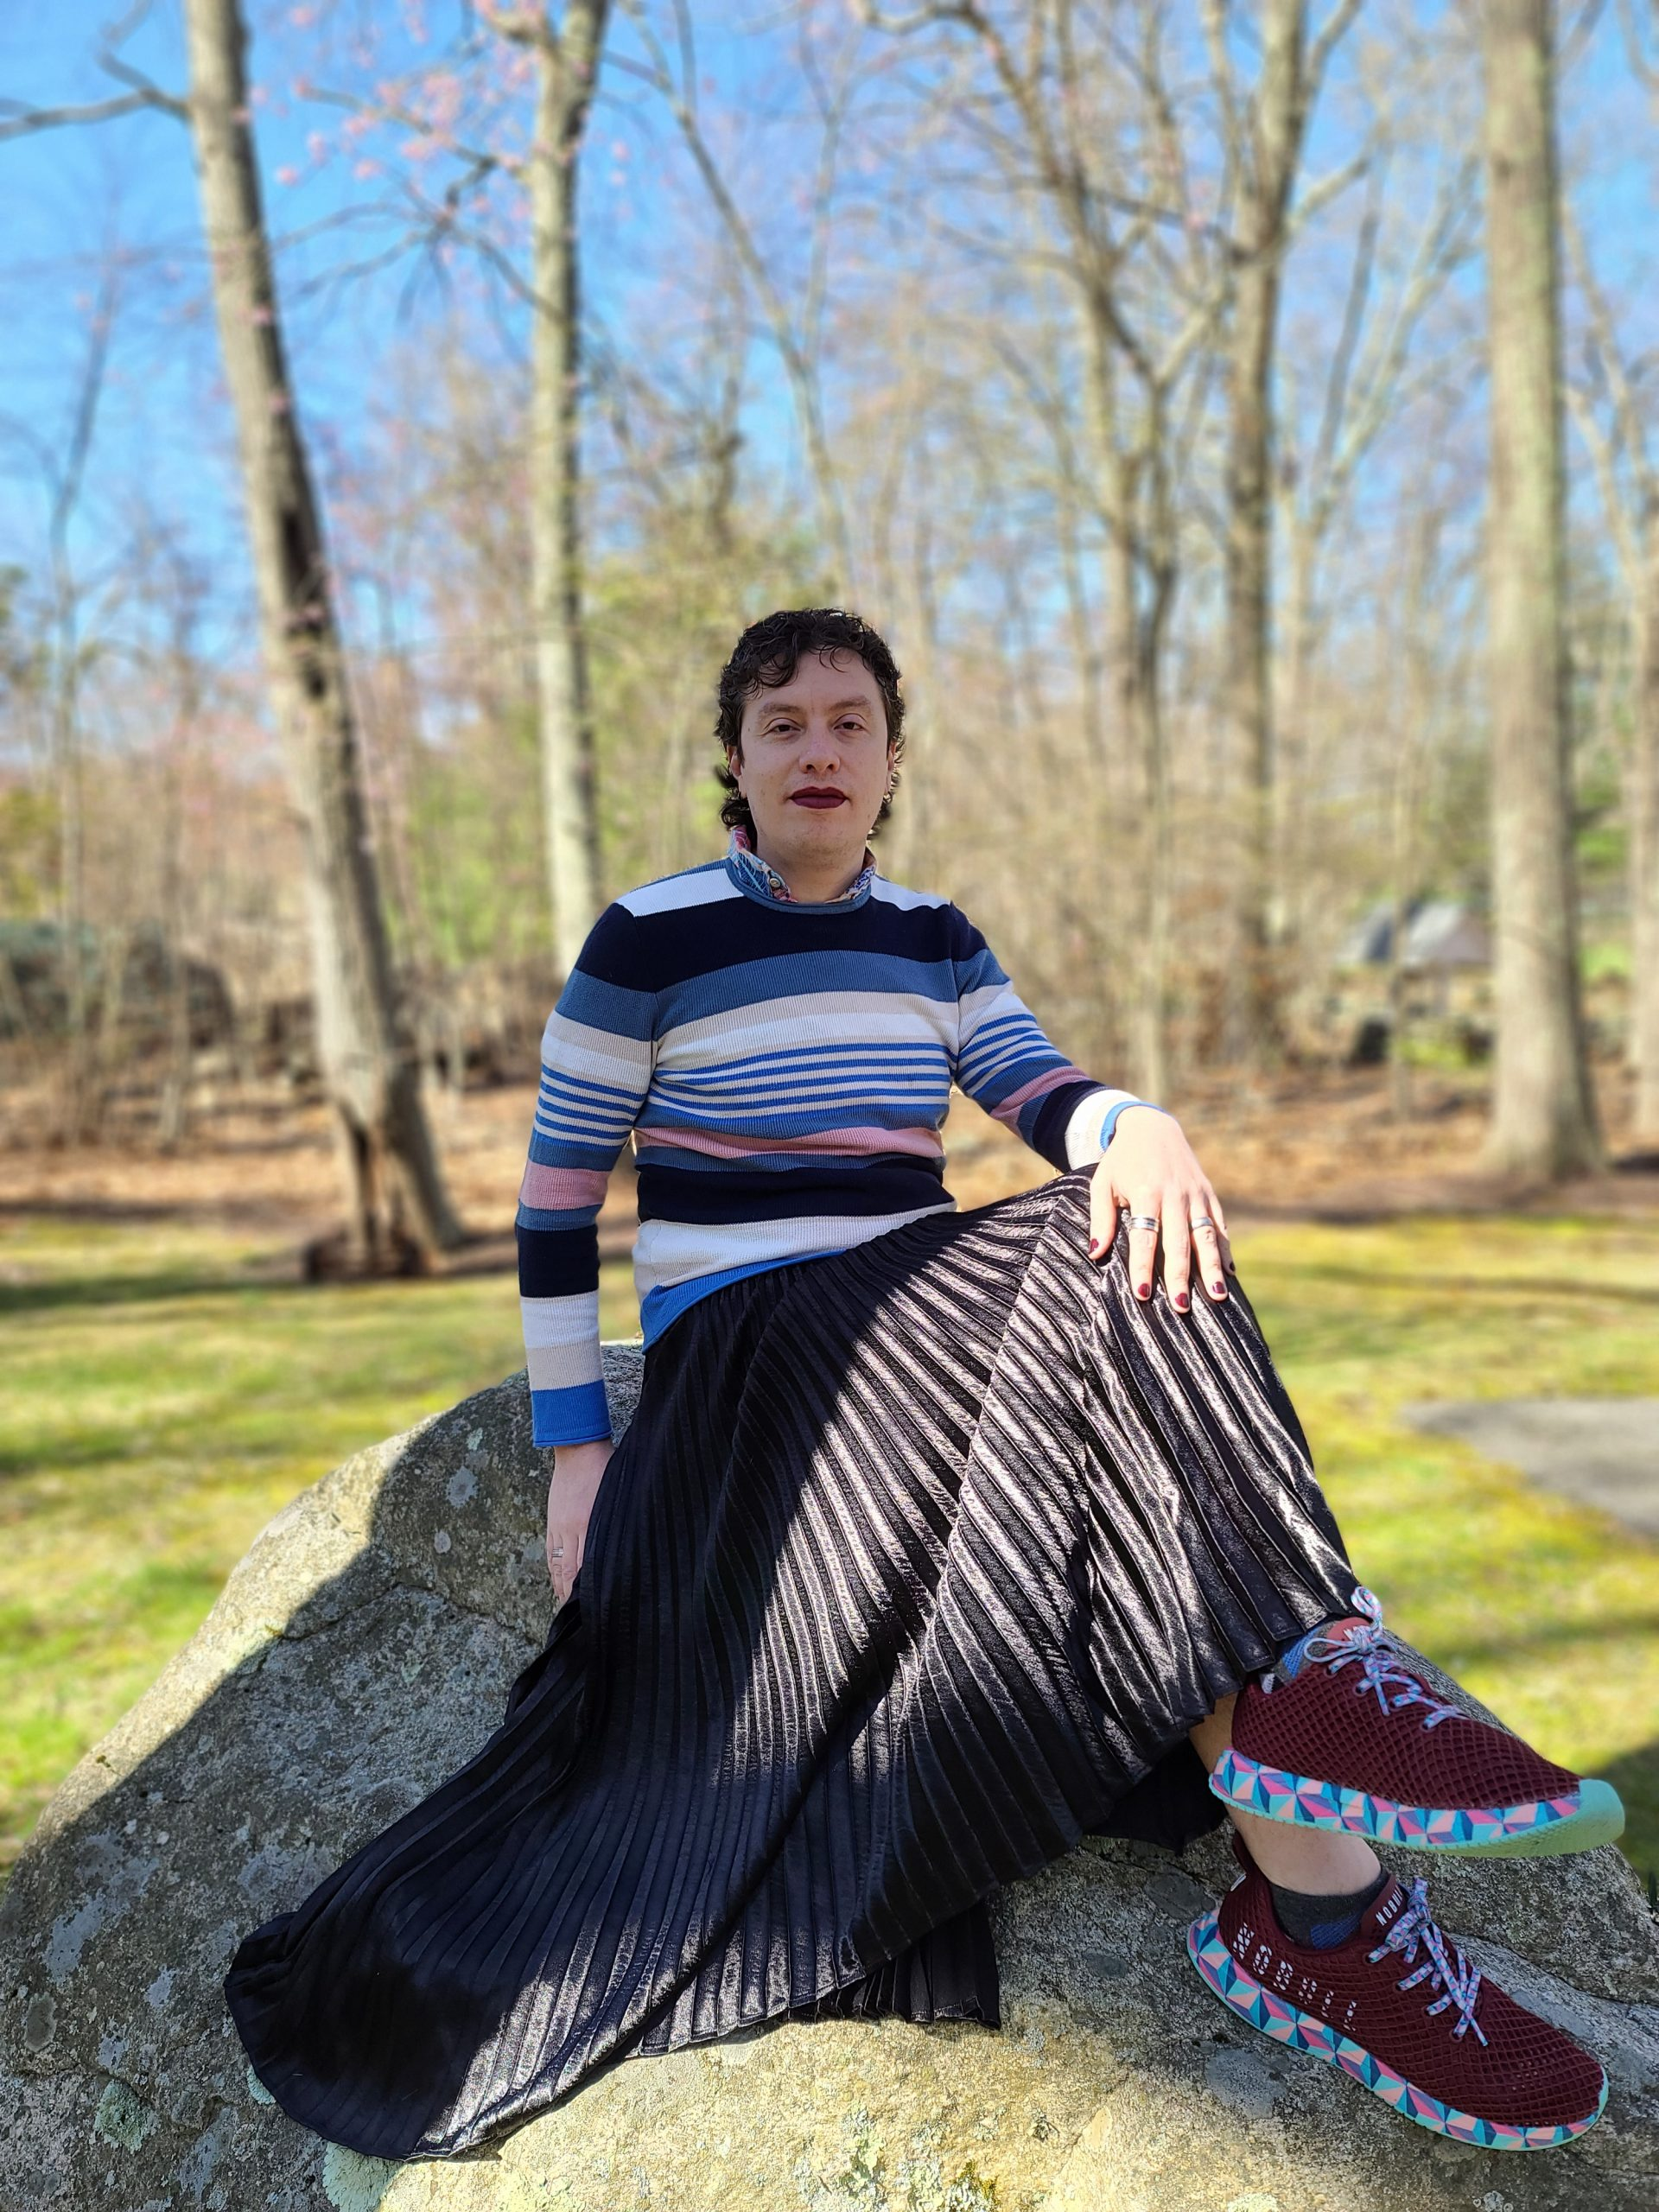 photograph of a person sitting on top of a rock. they are wearing a horizontal striped to in assorted colors, a black skirt, and maroon shoes with a multicolored edge.